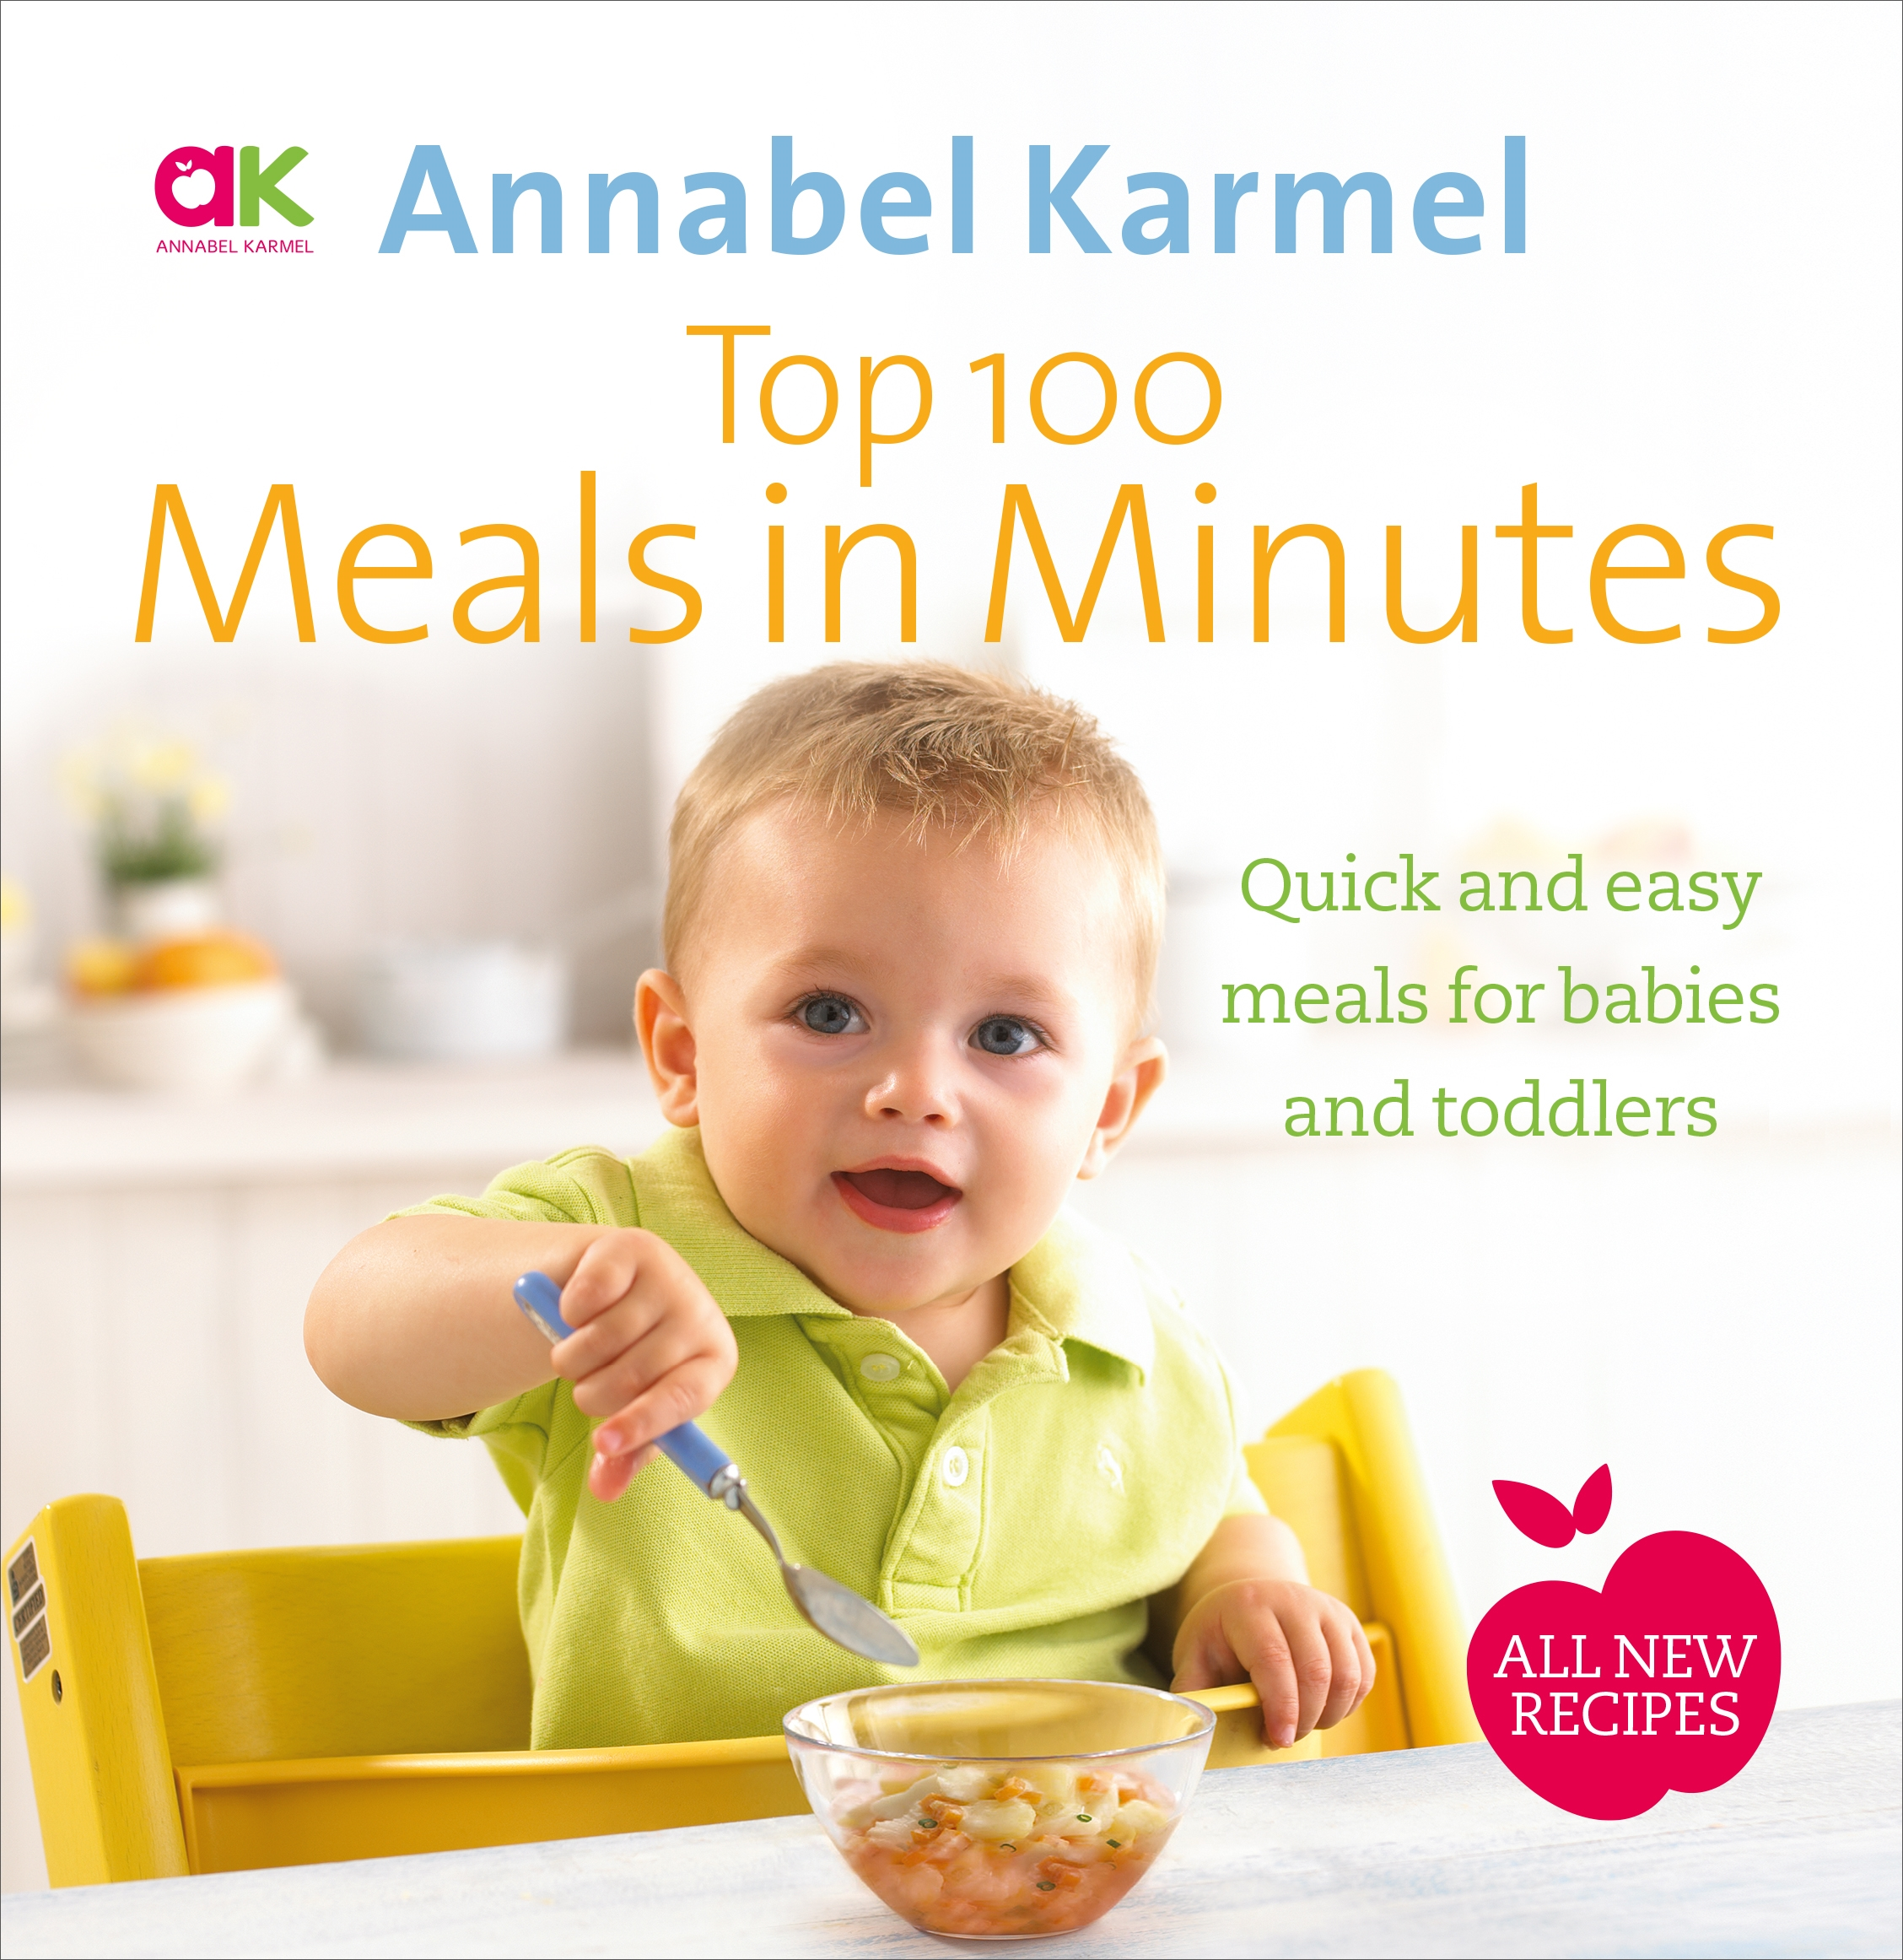 Top 100 meals in minutes by annabel karmel penguin books australia hi res cover forumfinder Choice Image